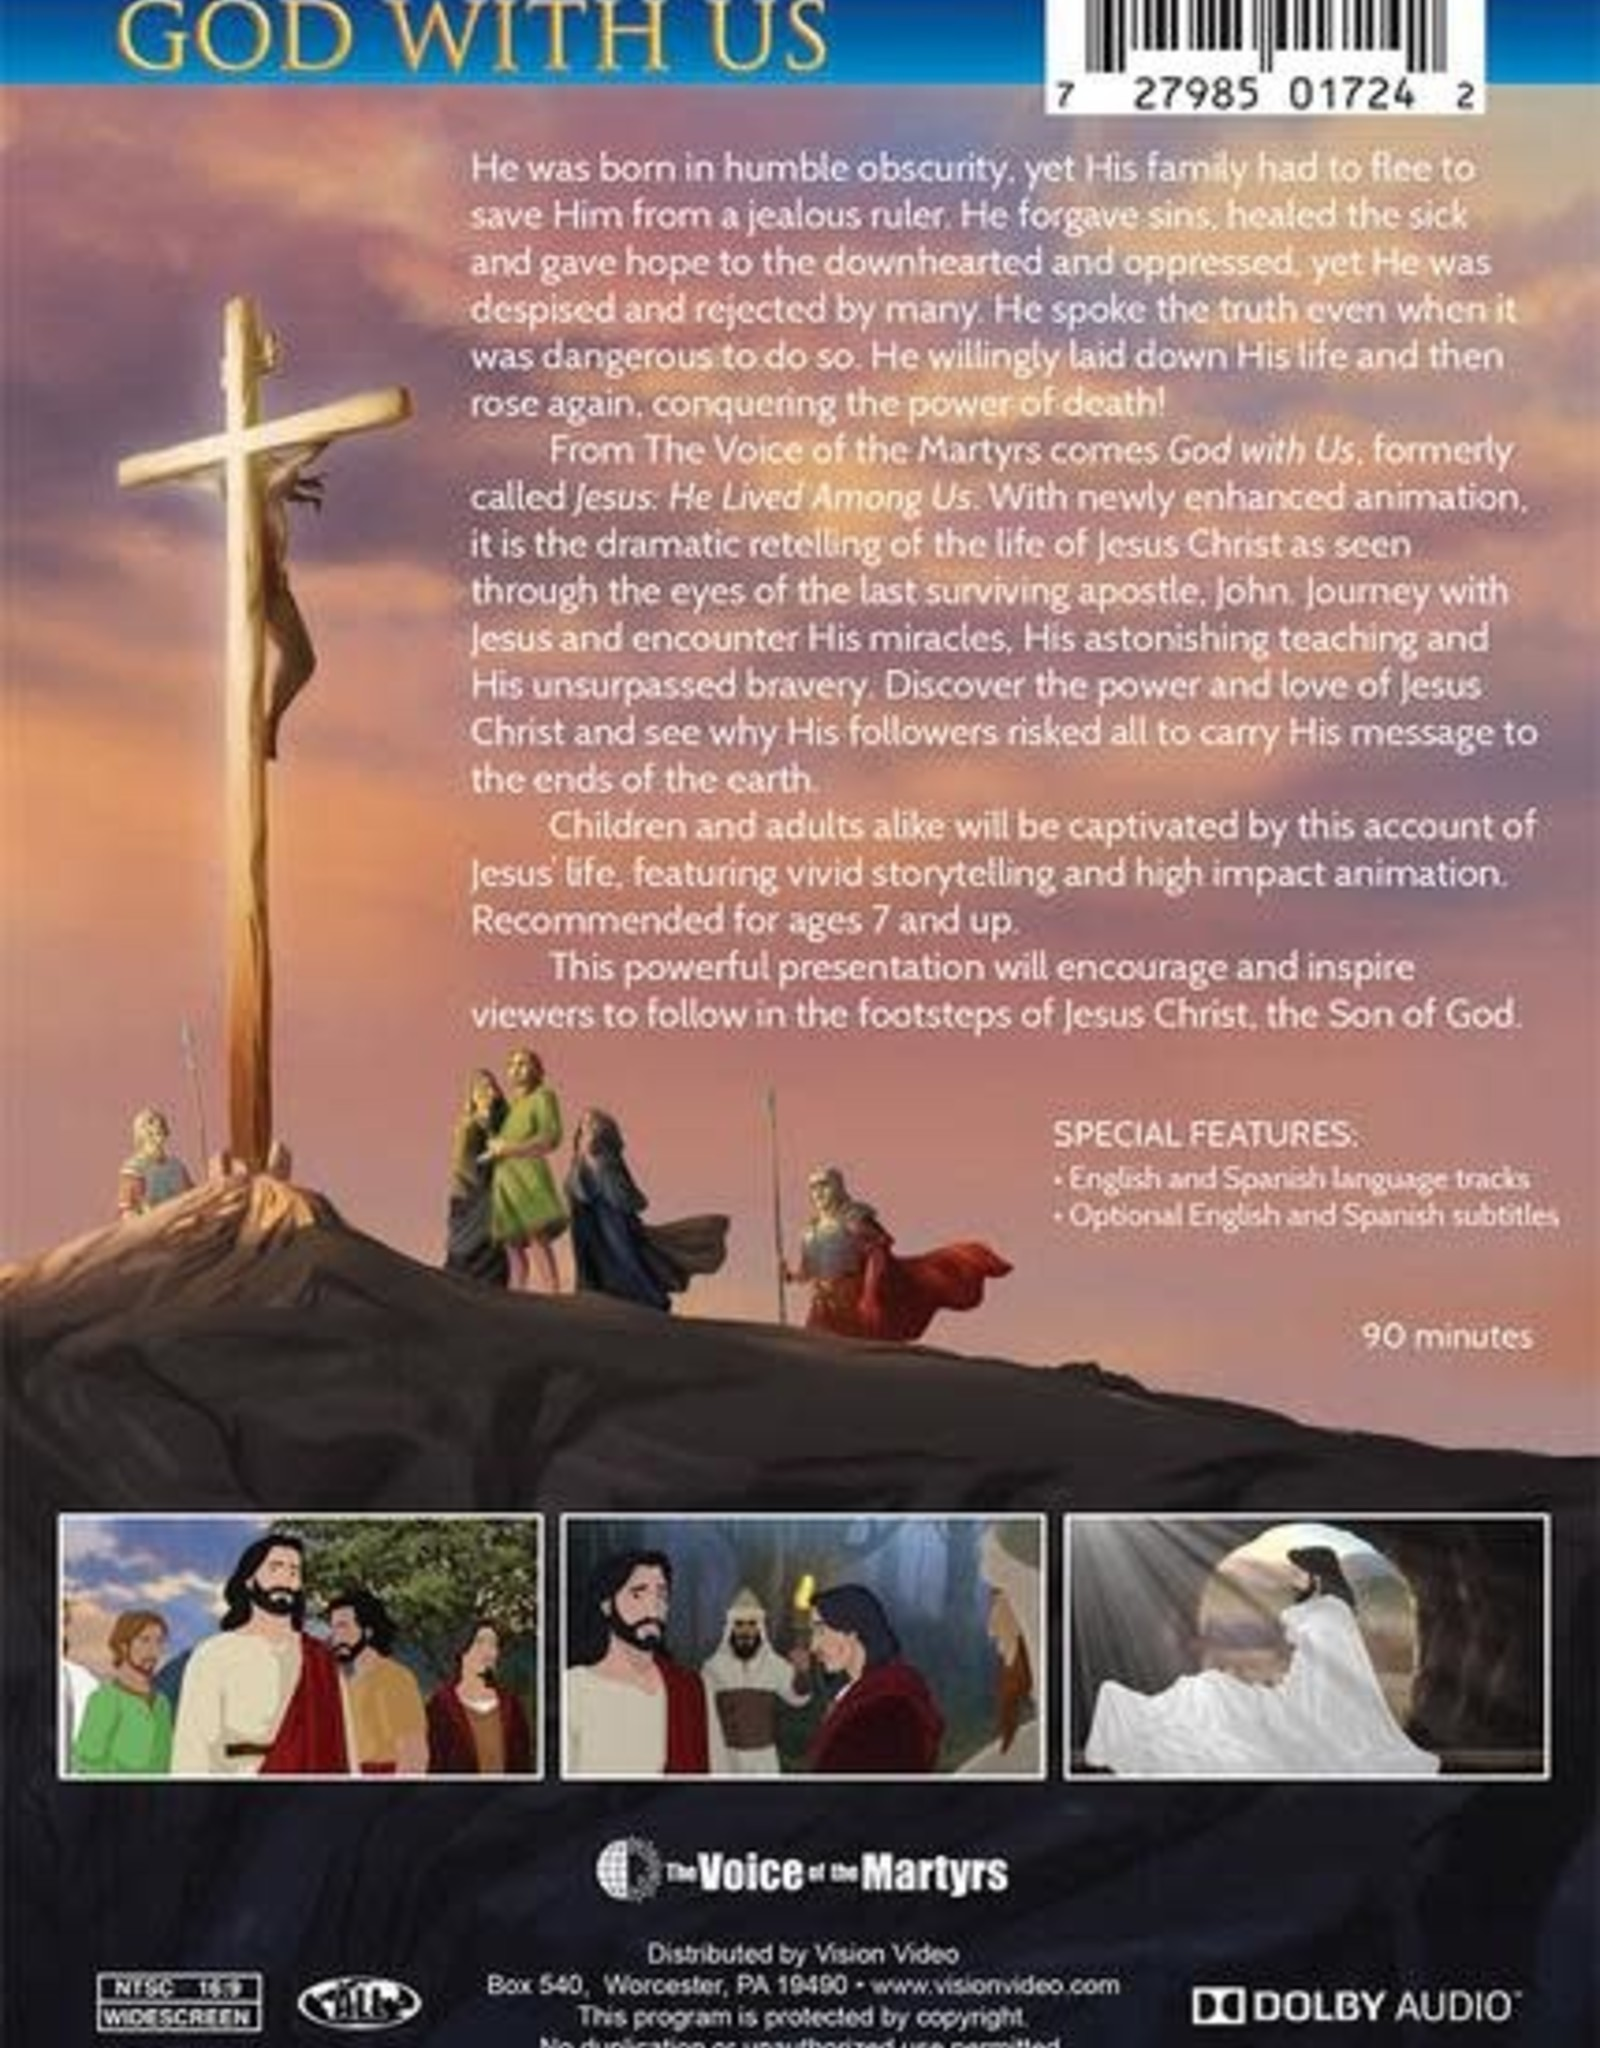 Brother Francis God with Us:  The Coming of the Savior (DVD)